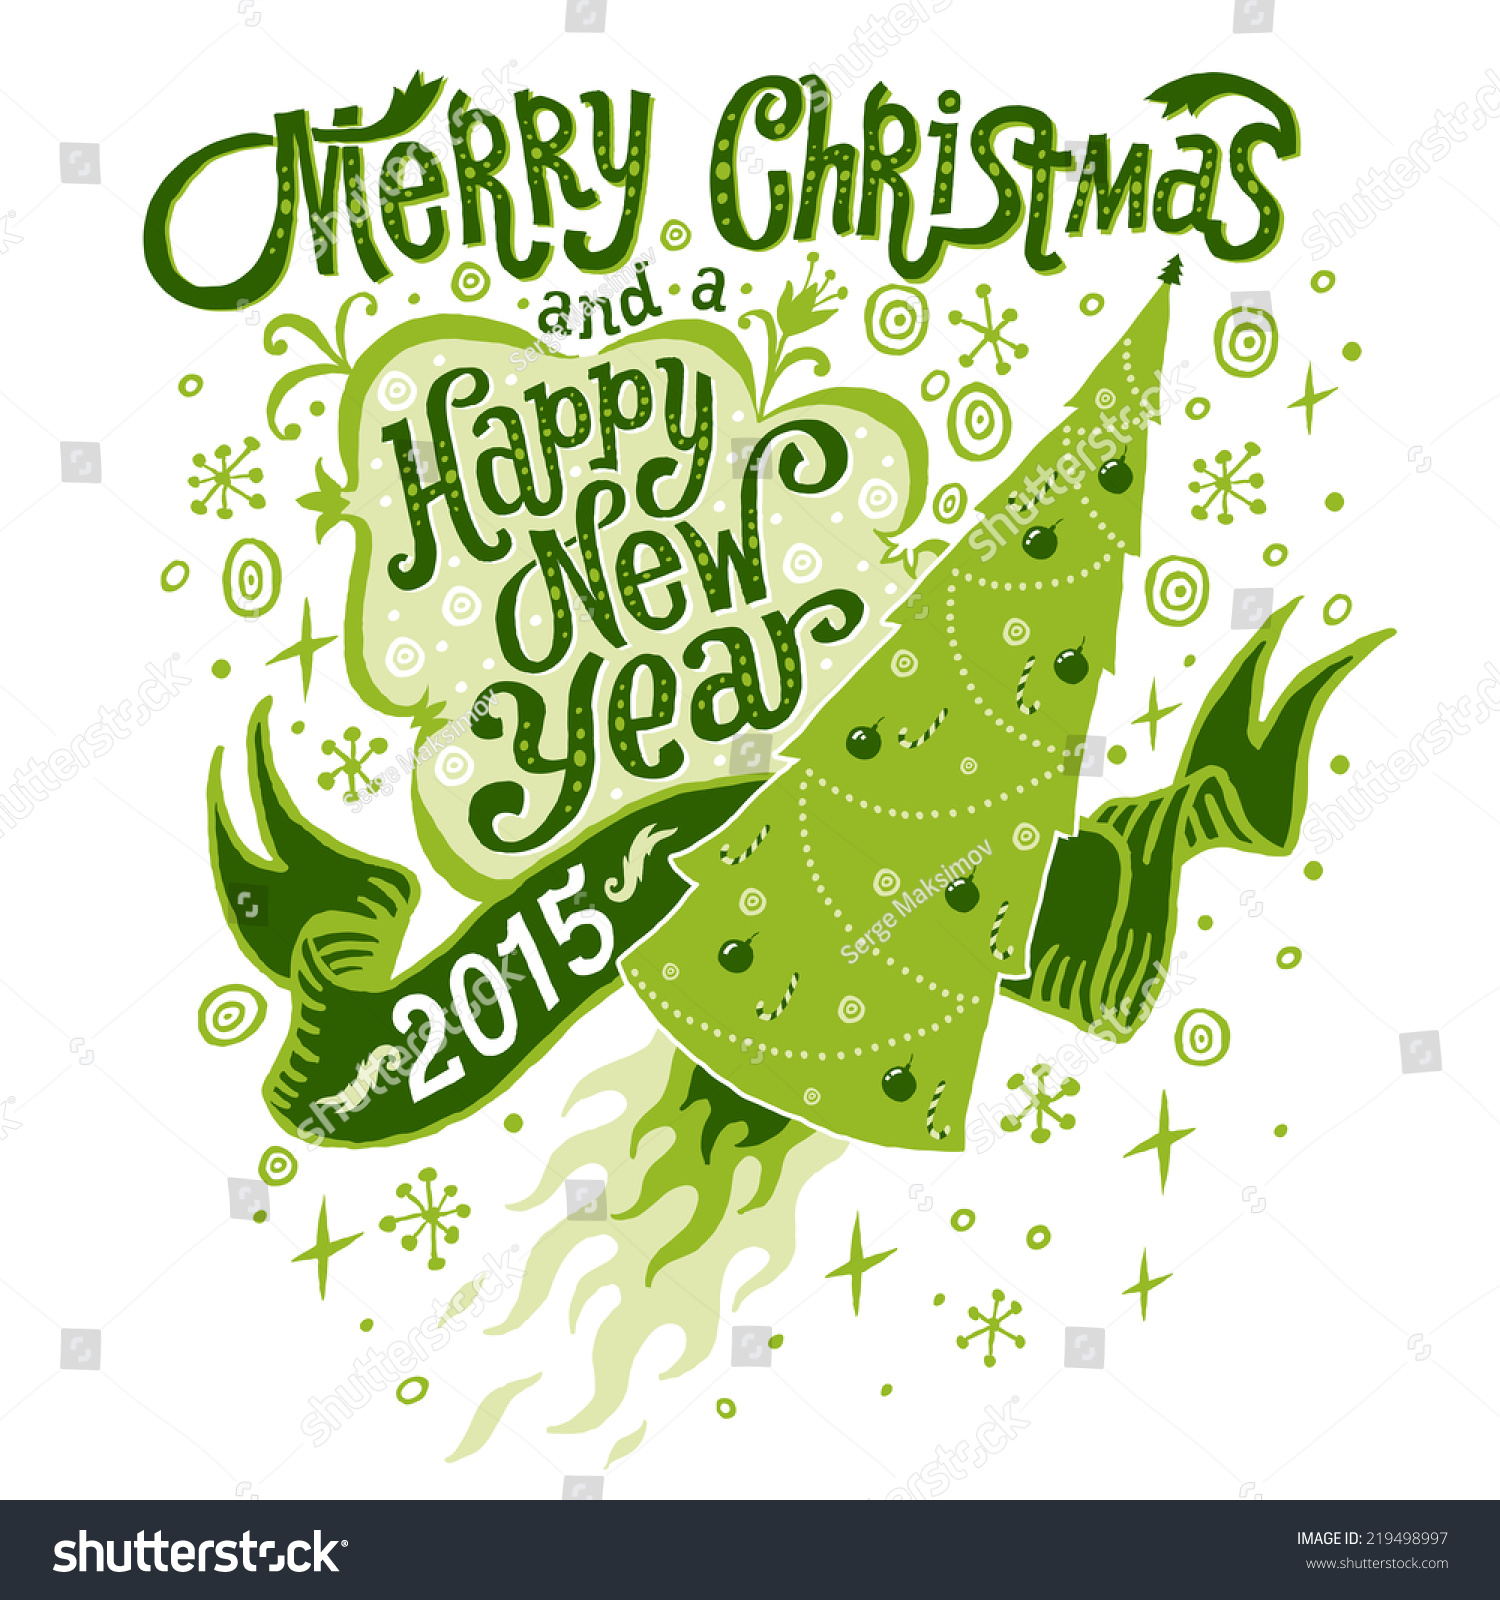 Merry Christmas Happy New Year 2015 Stock Vector Hd Royalty Free